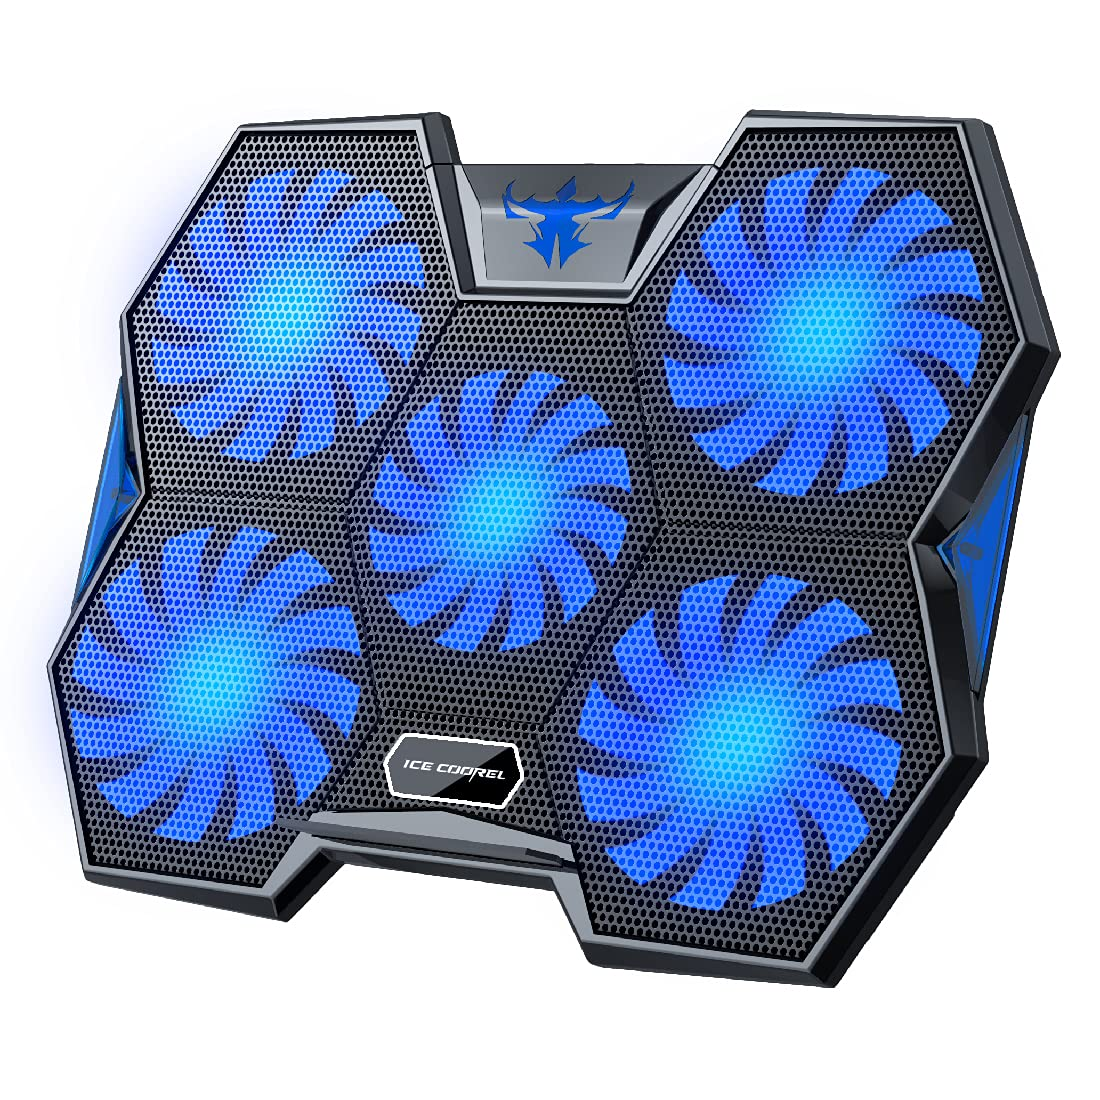 ICE COOREL Laptop Cooling Pad 15.6-17 inch, Gaming Laptop Cooler Pad with 5 Big Quiet Cooling Fans, Notebook Cooler Fast Heat Dissipation, The Wind Speed Adjustable, Dual USB 2.0 Ports